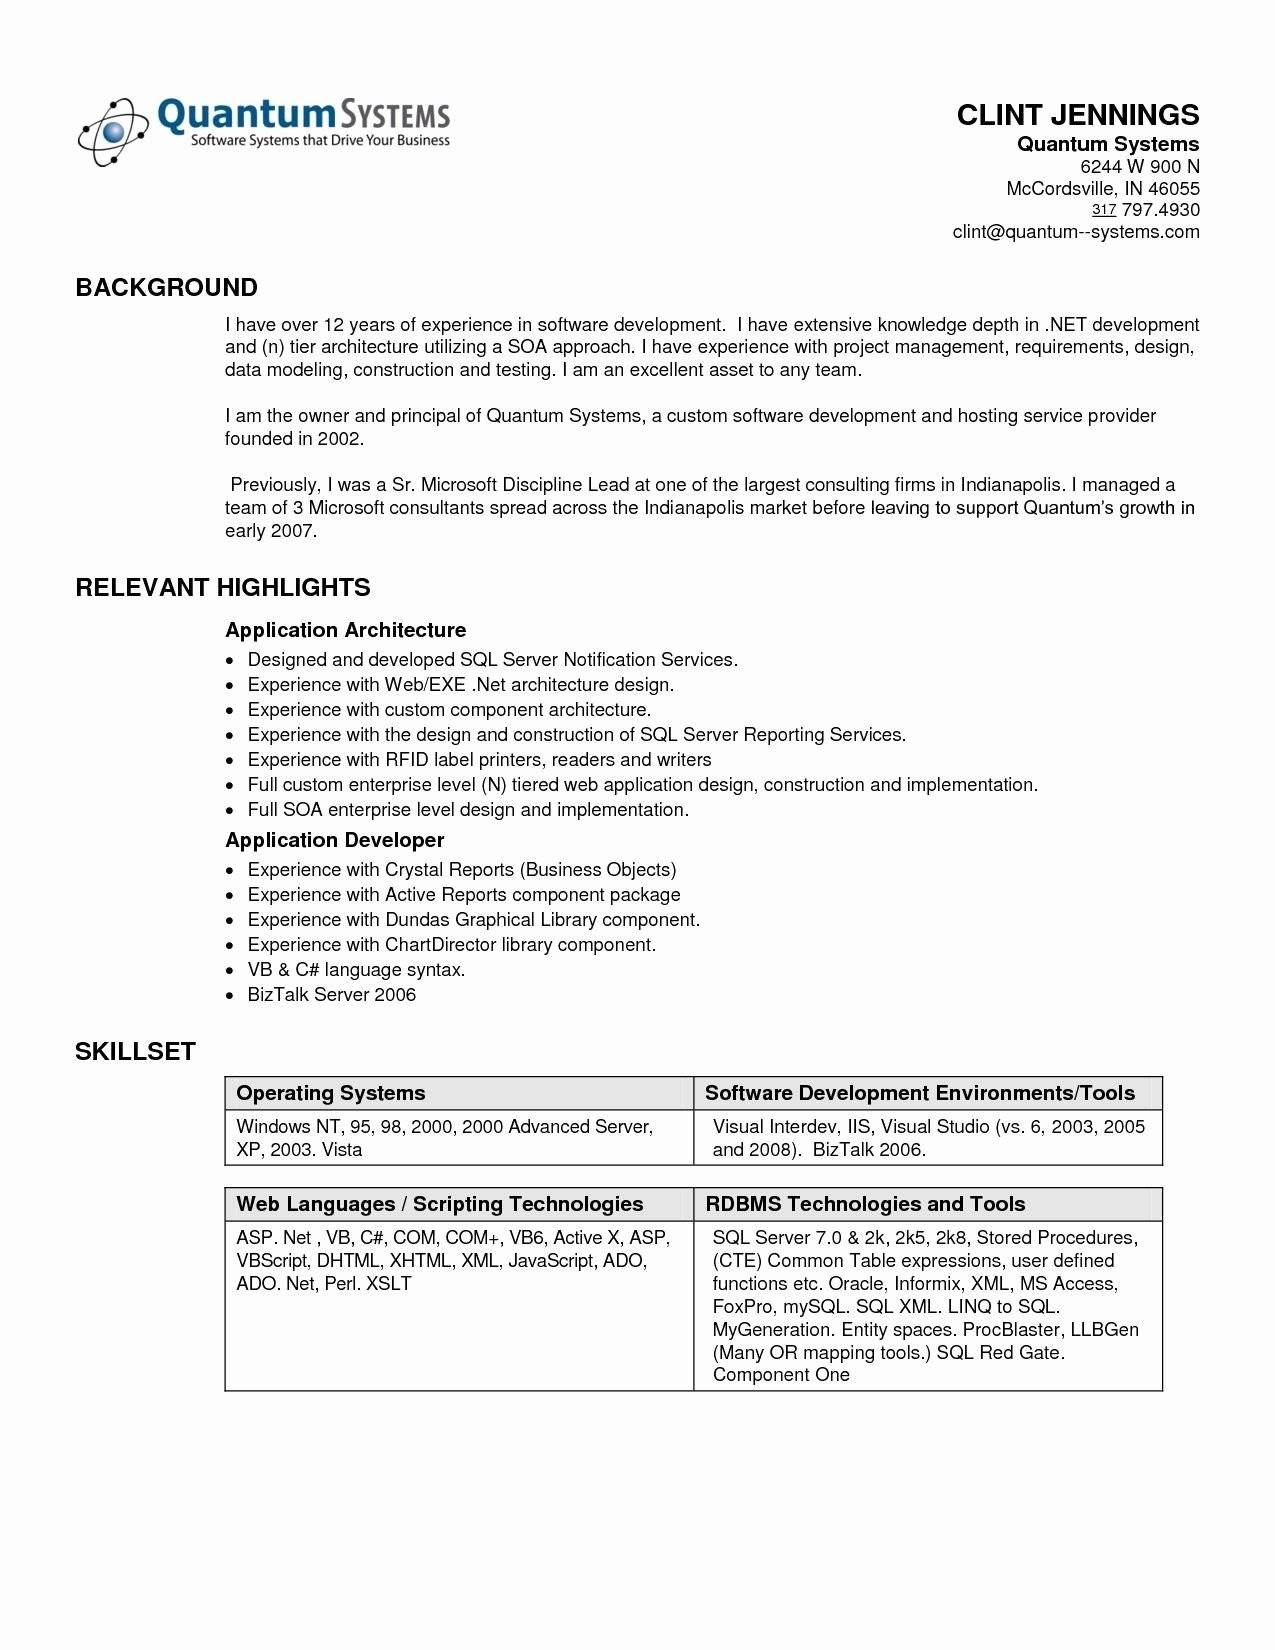 Physical Therapy Resume Templates Free